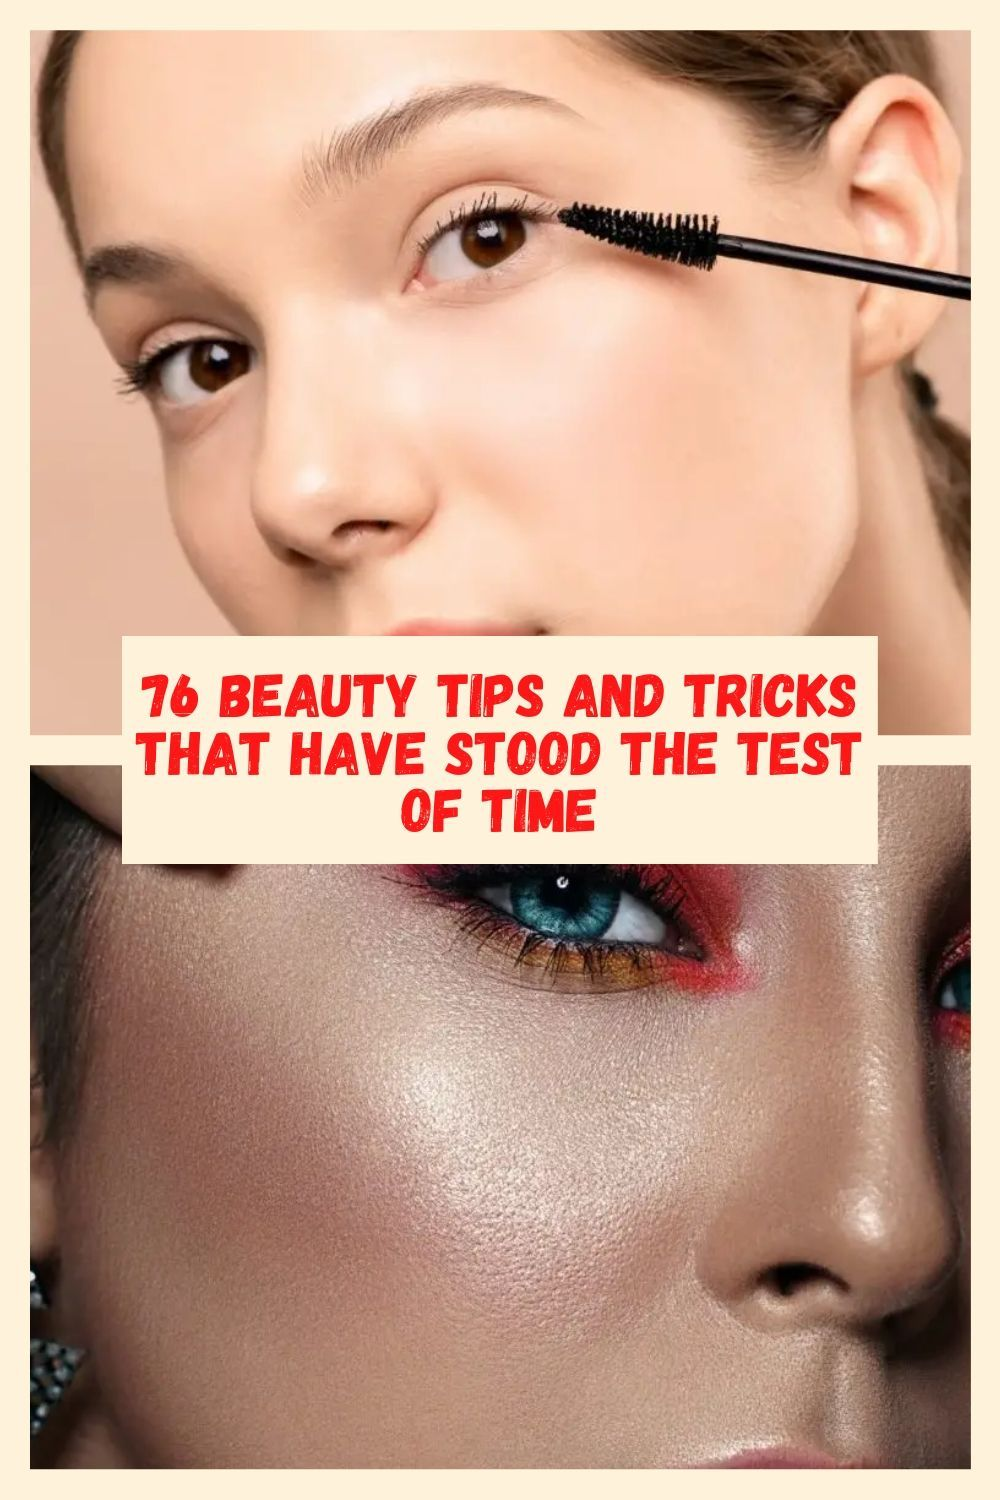 11 beauty tips that never go out of style in 11  Beauty hacks